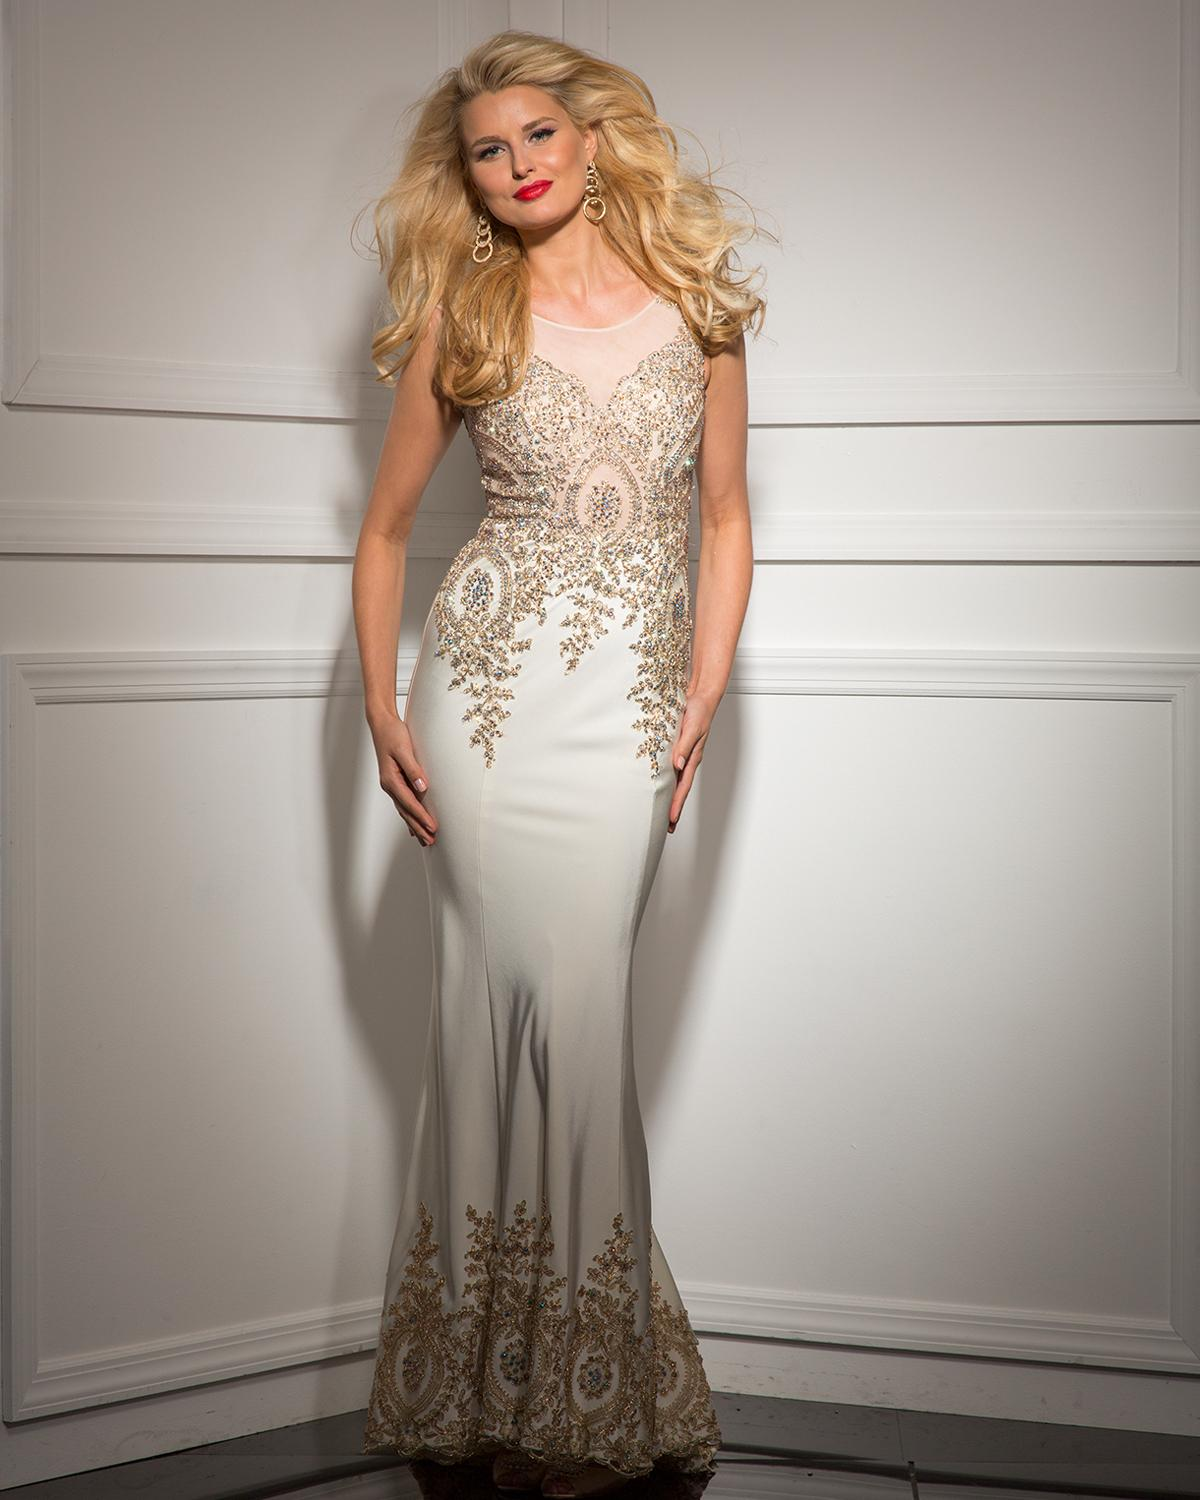 Used Prom Dresses Dallas Tx - Boutique Prom Dresses